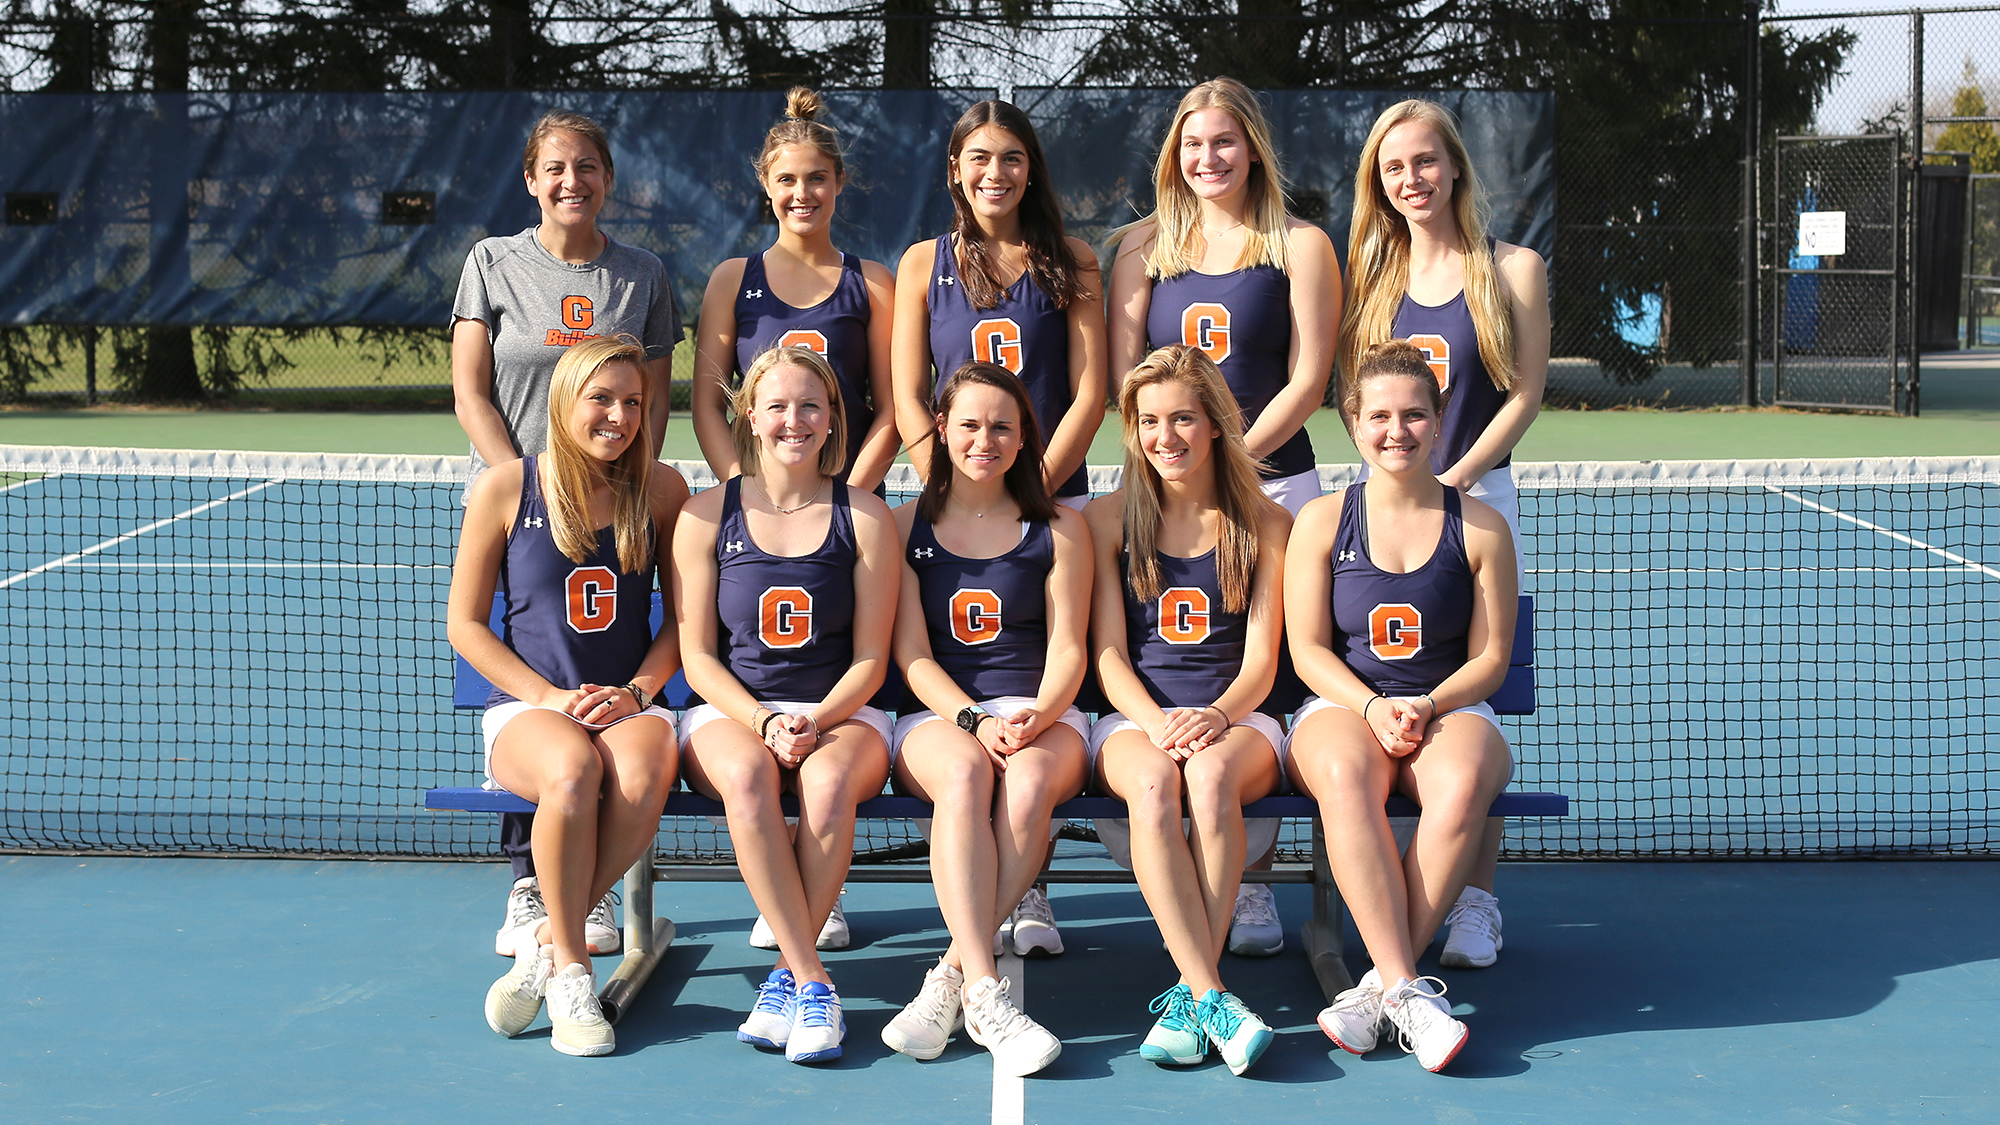 Women's Tennis Earns Academic Honors from ITA - Gettysburg